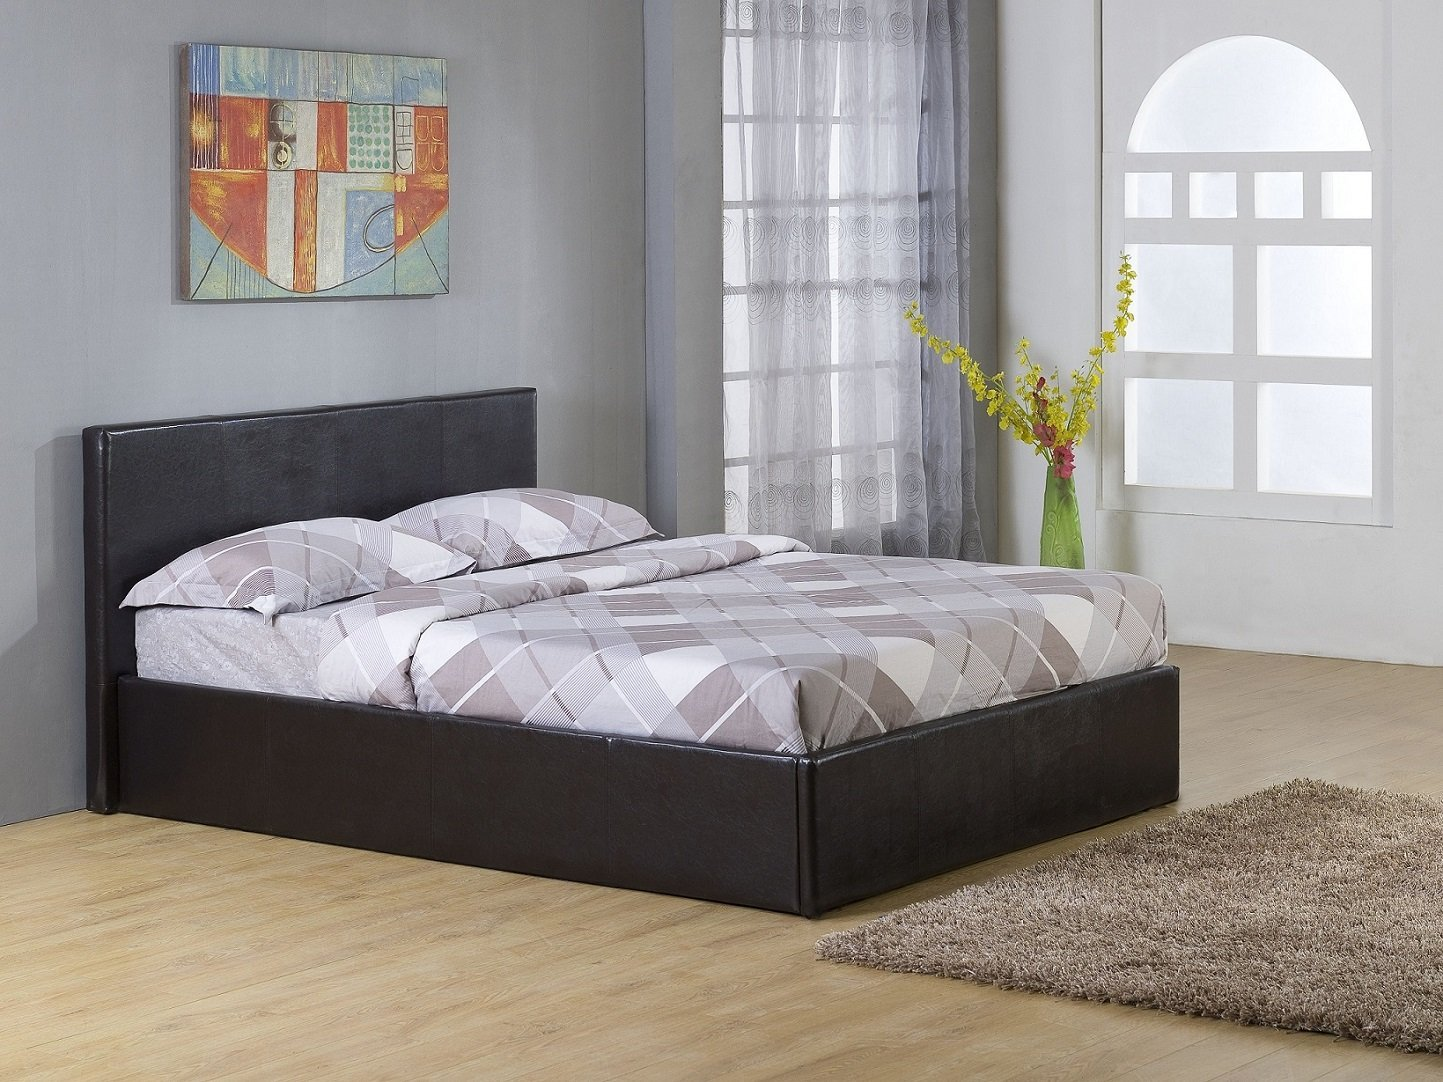 Image of: California King Storage Bed Size